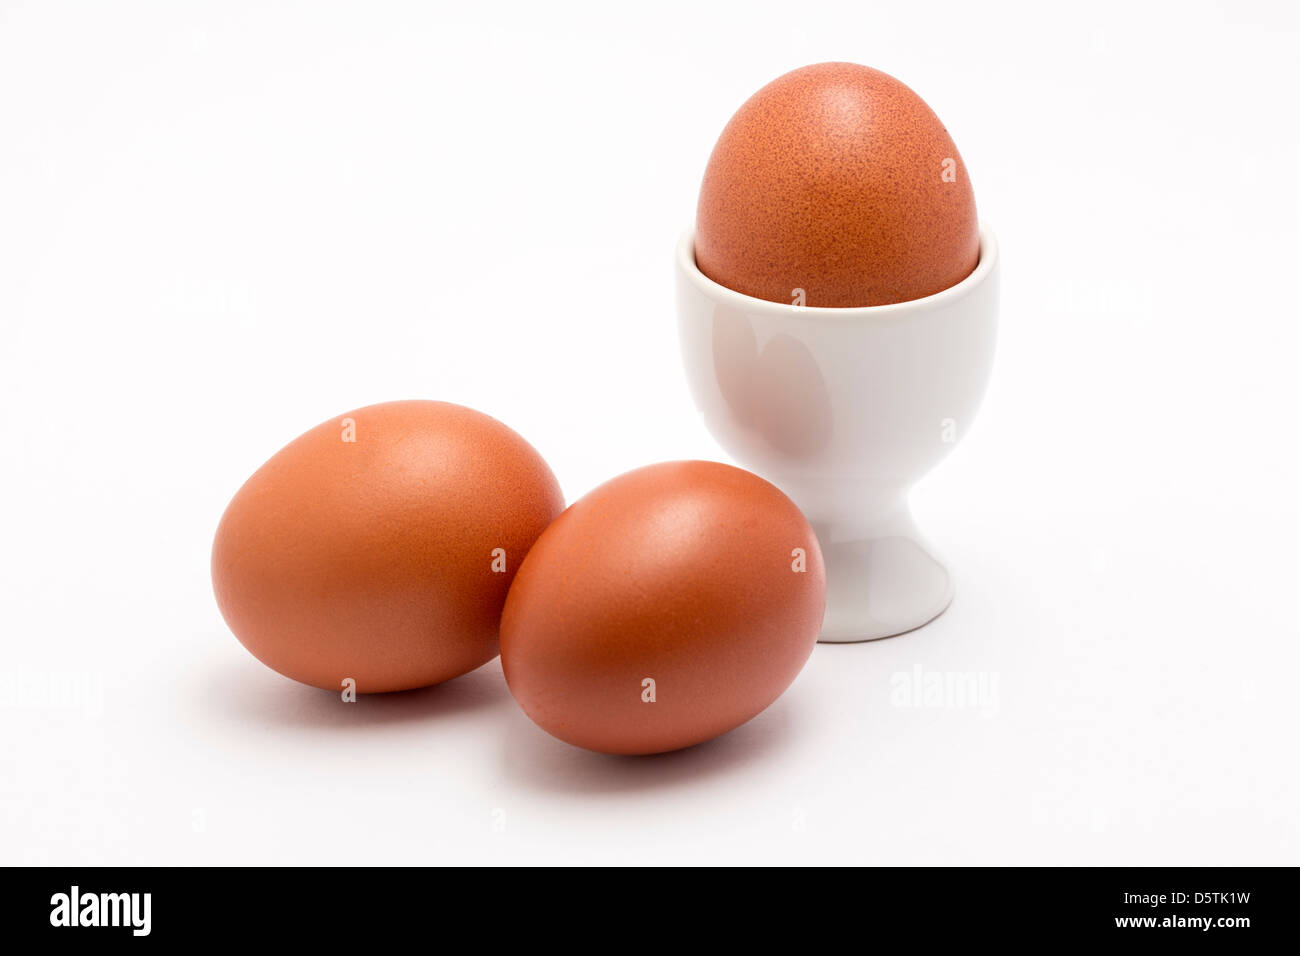 Three Burford Brown eggs one in a white egg cup on a plain background. - Stock Image